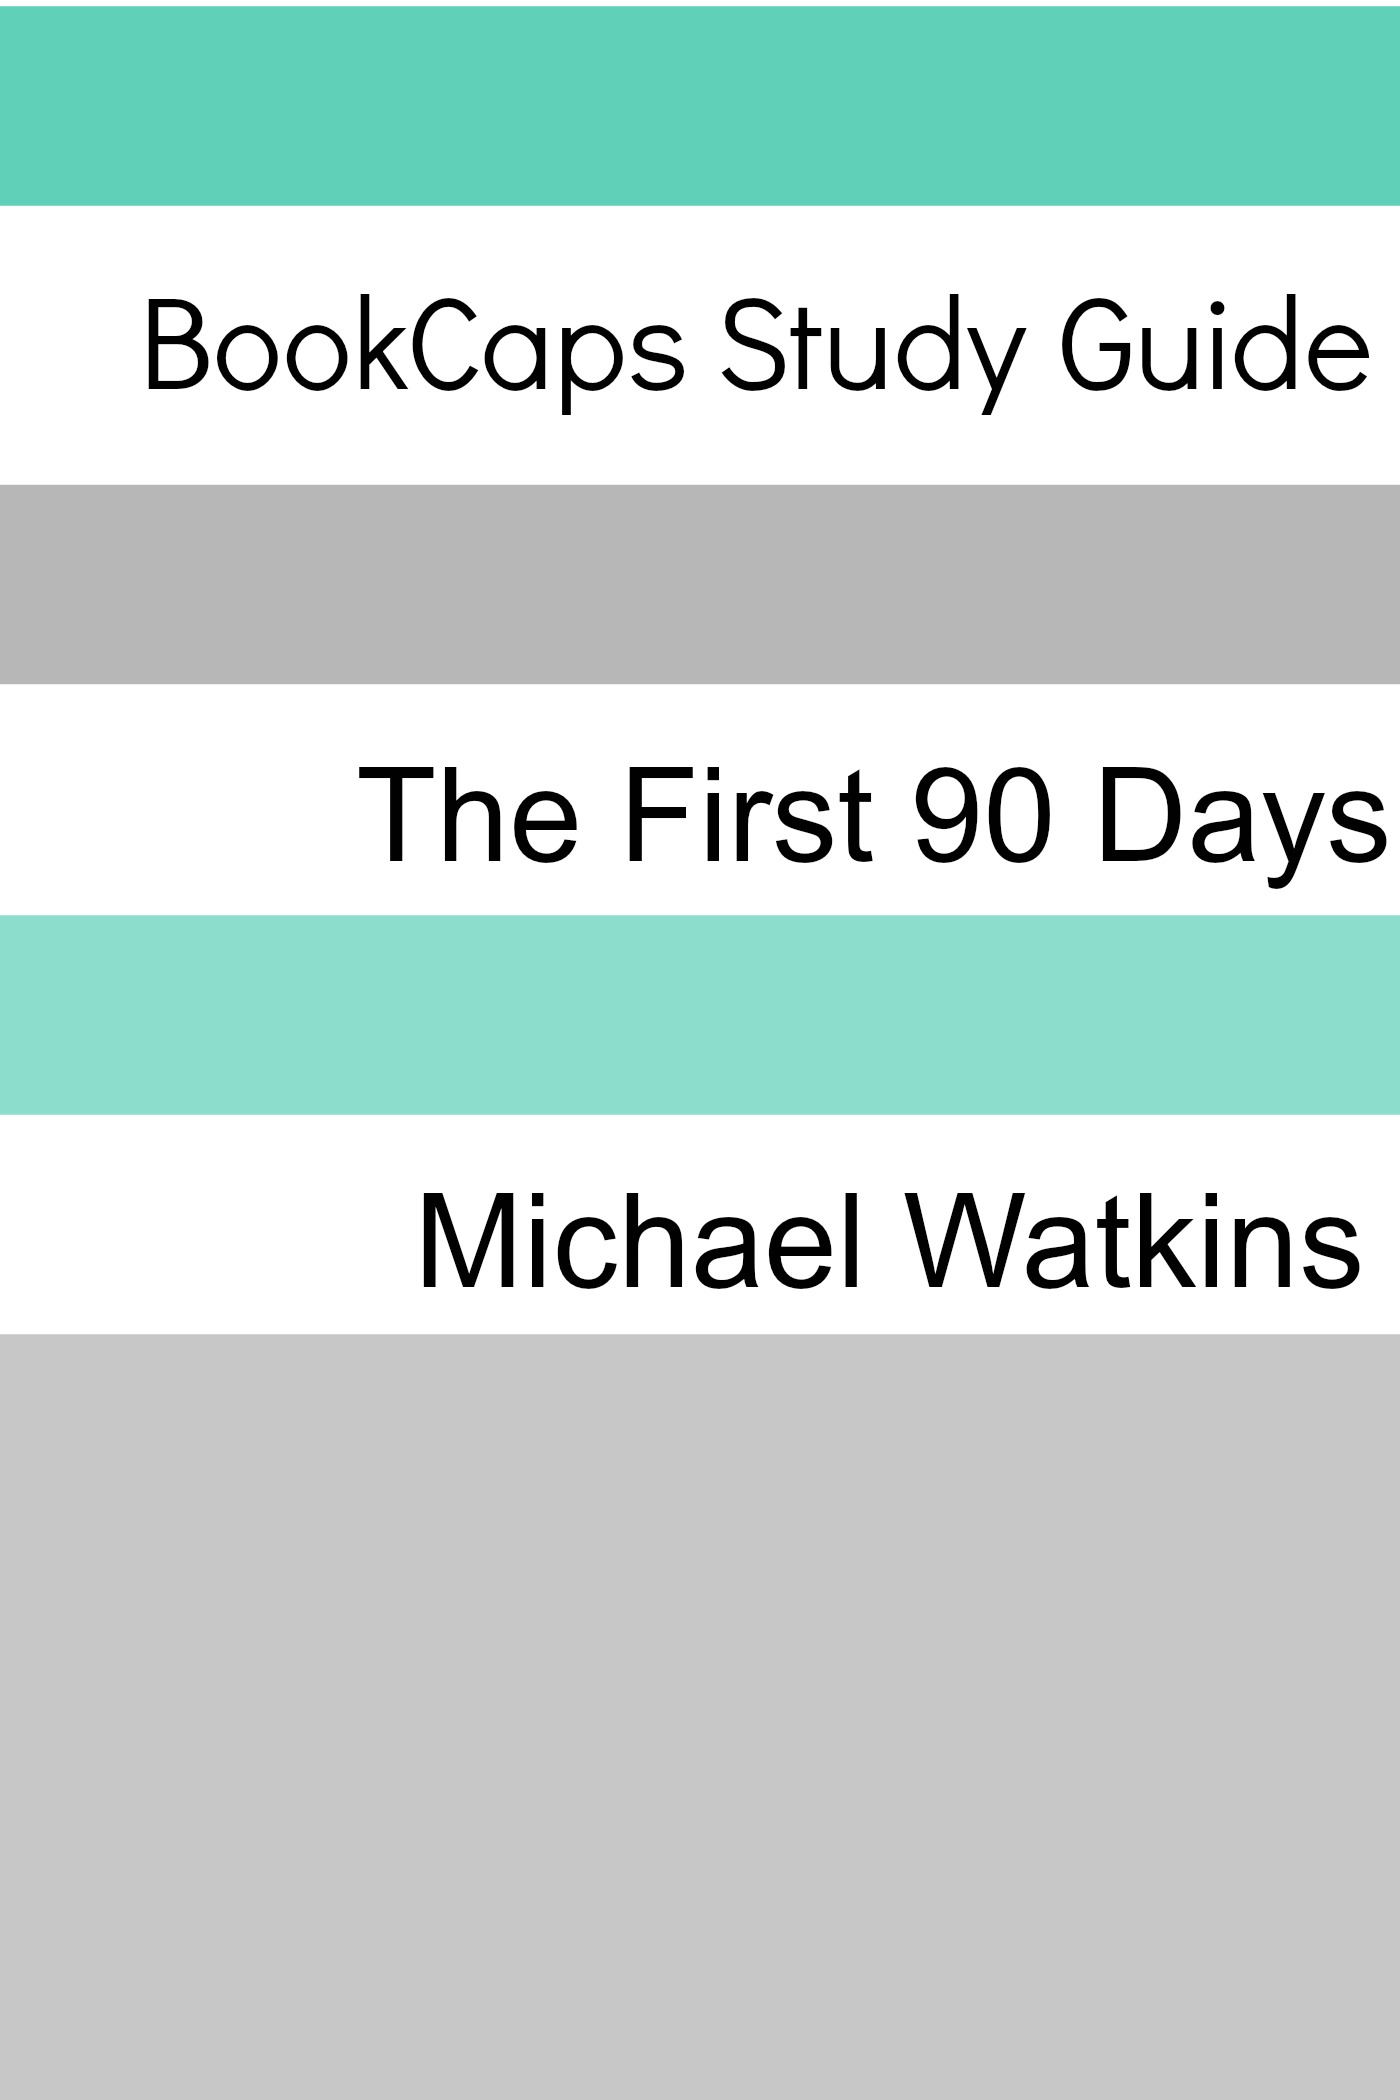 Study Guide: The First 90 Days By: BookCaps